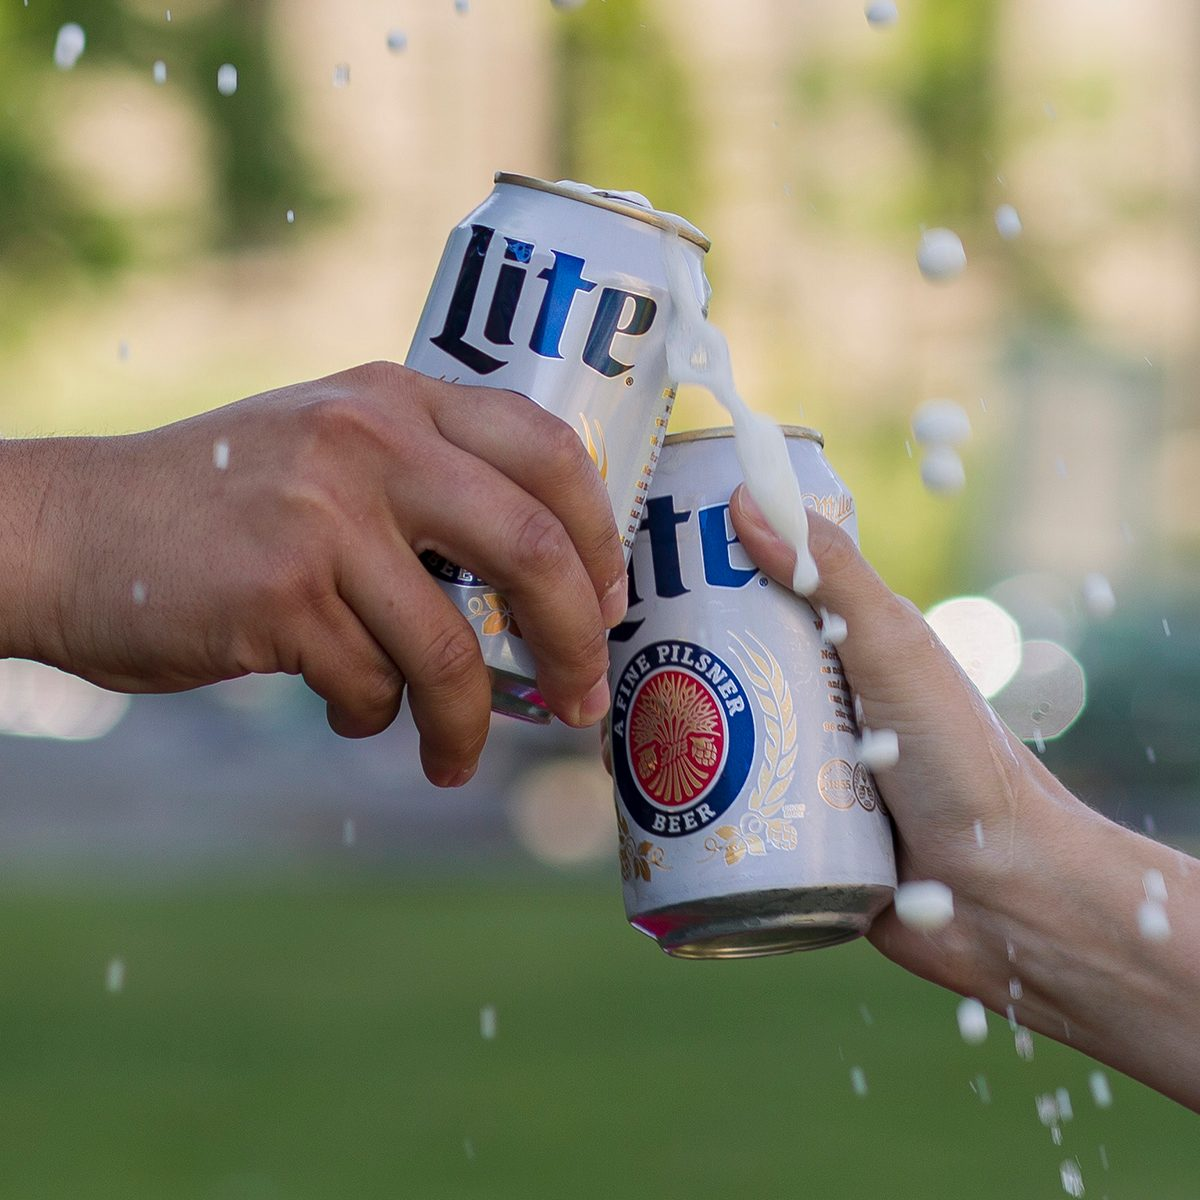 Toasting cans of Miller Lite